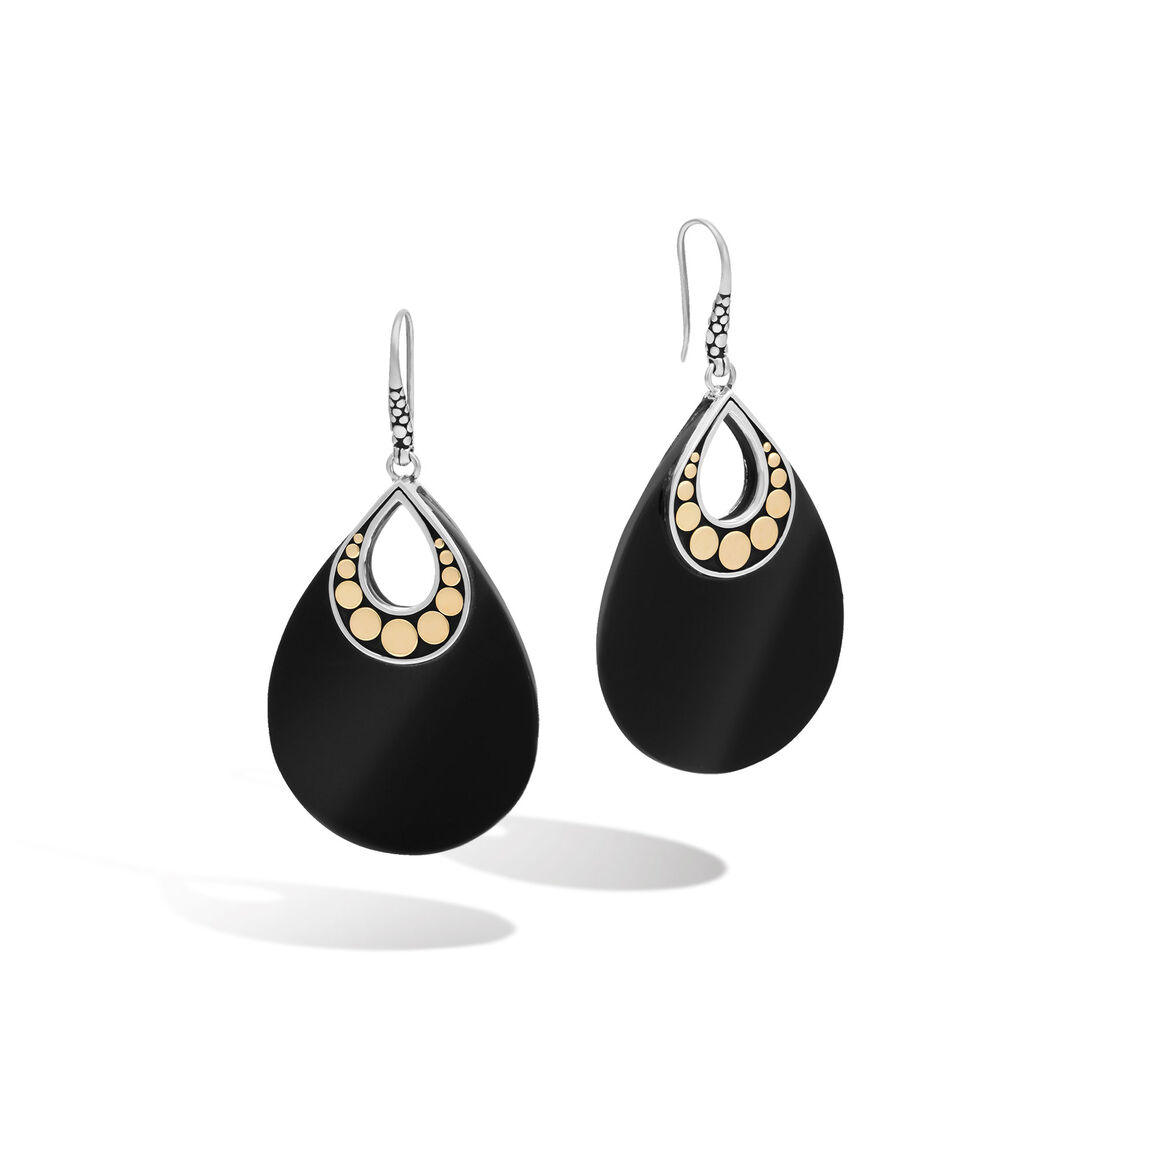 Dot Drop Earring in Silver and 18K Gold with Gemstone